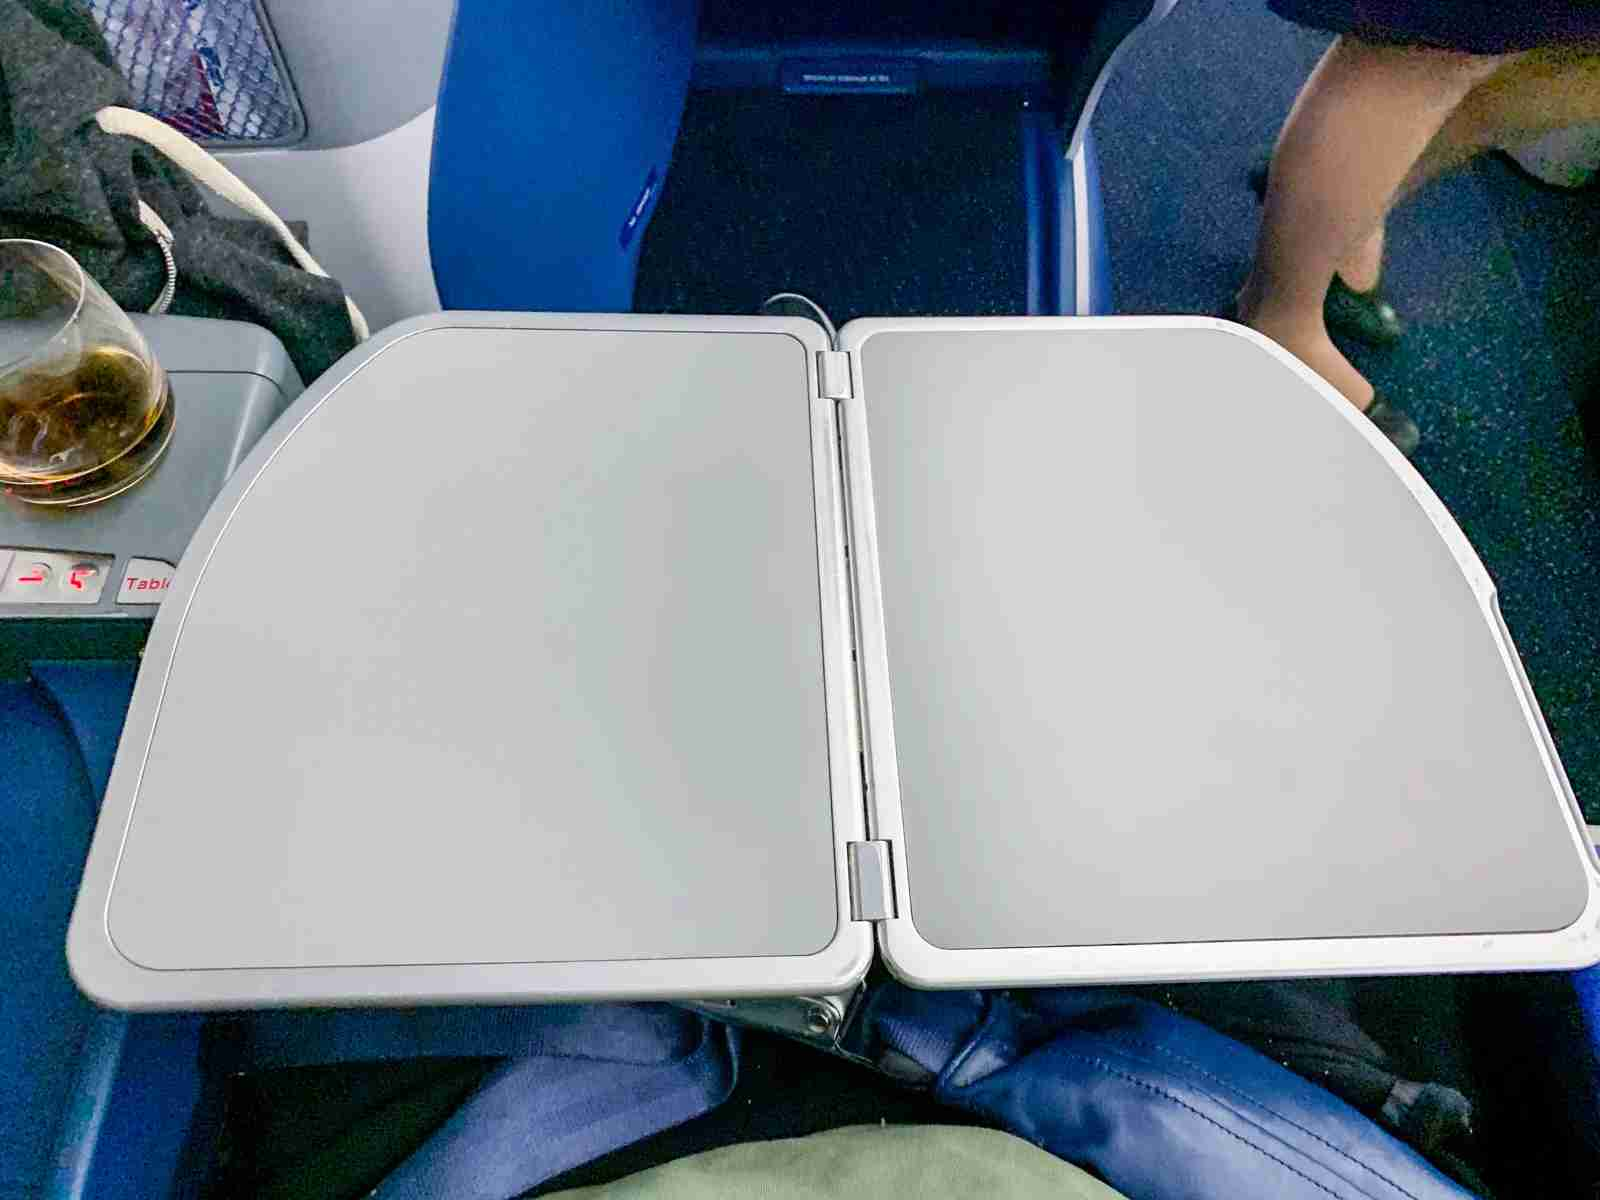 Tray table on the Delta 767-300ER.